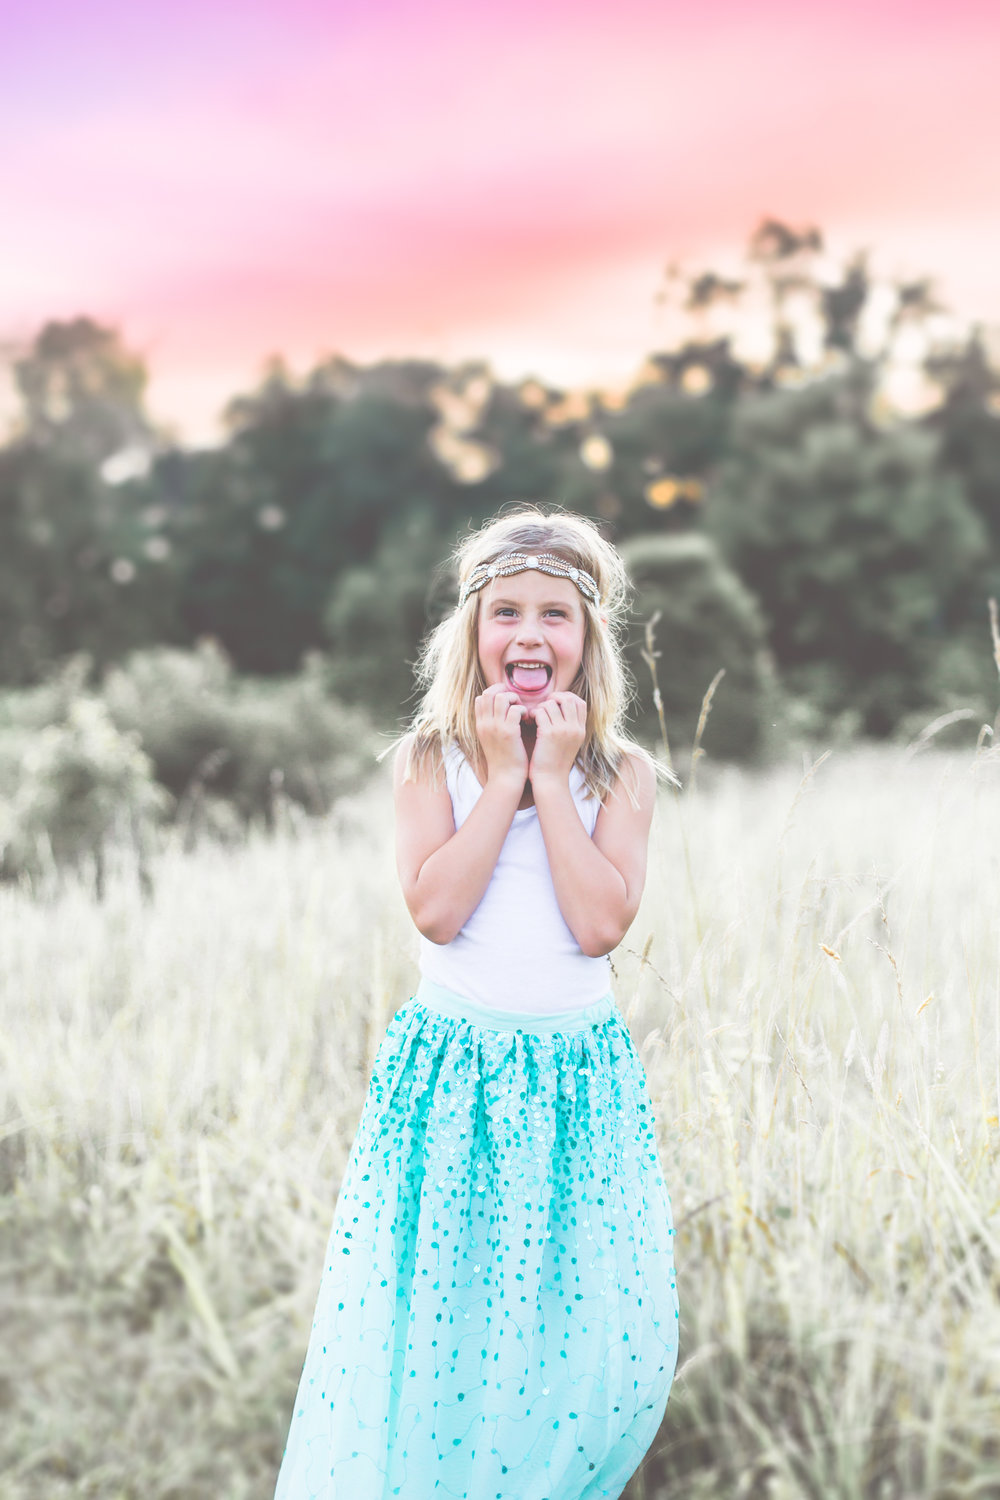 LITTLES  $650  90-120 minute photo session at location(s)T.B.D. with one outfit change. Pricing includes session fee, 40+ thoughtfully edited high resolution digital images with full print release and personal viewing collection.